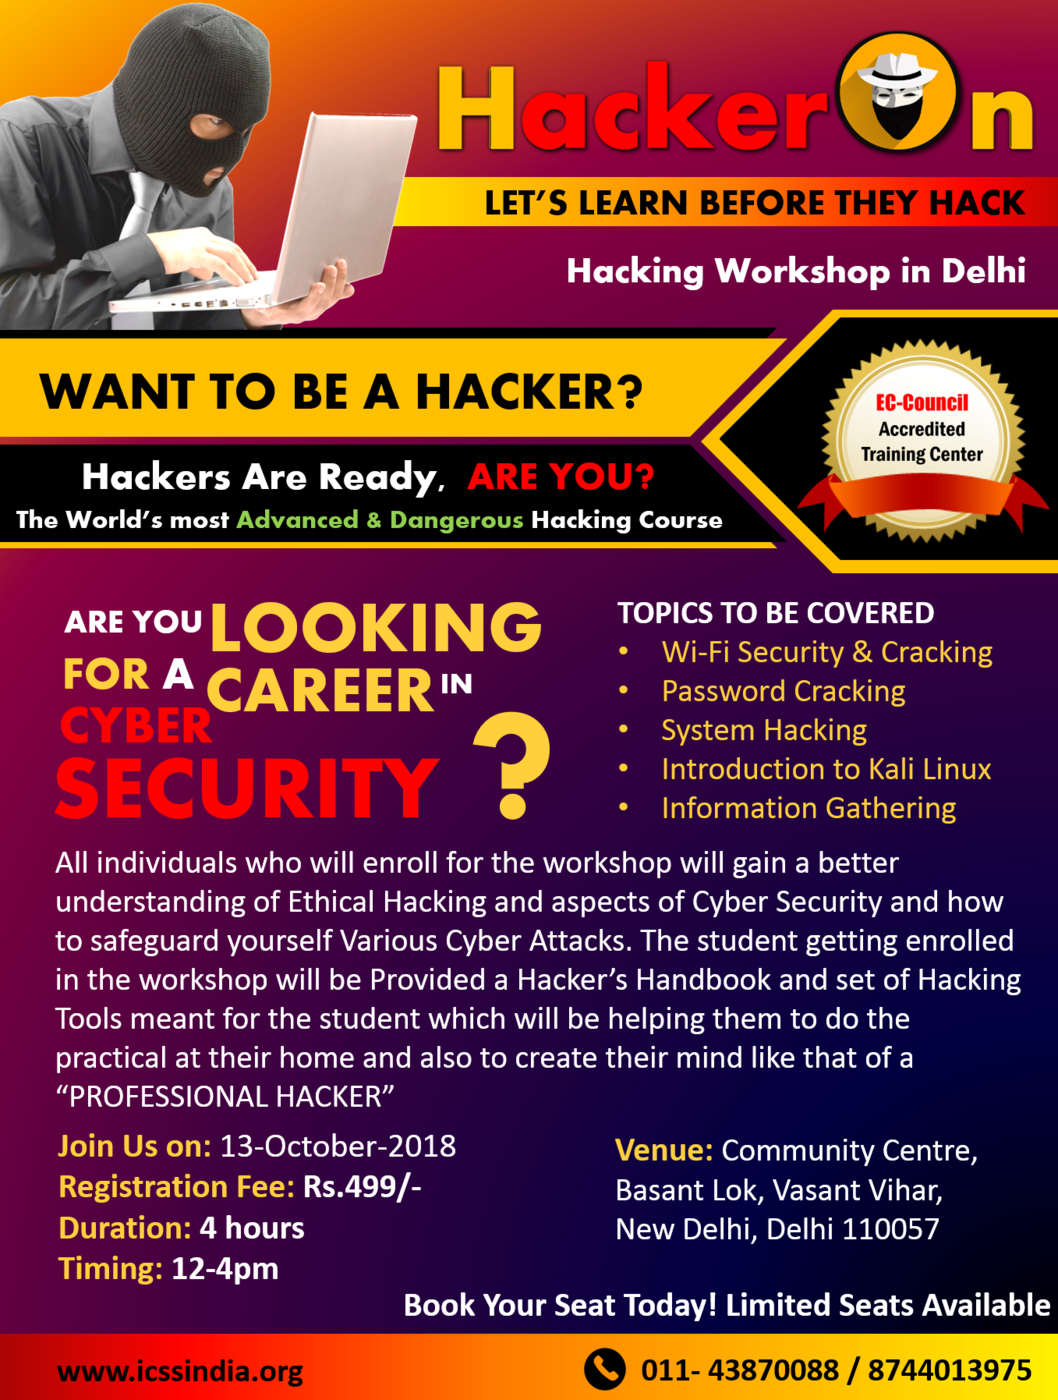 Hackeron Ethical Hacking Workshop in Delhi Provided By ICSS